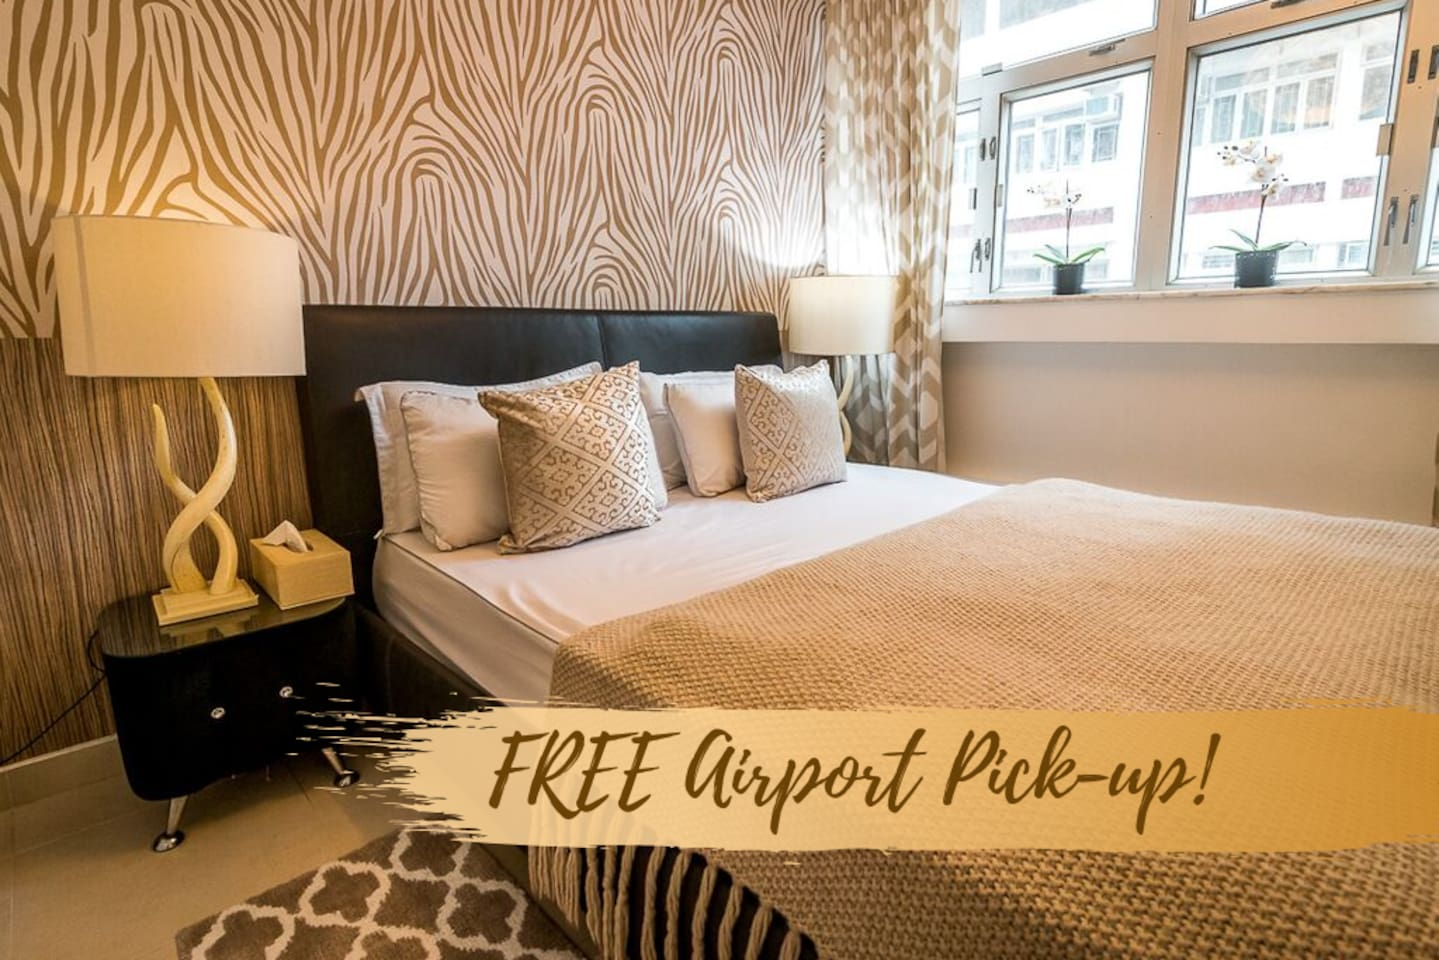 Book for a minimum of 6 nights stay within the month of October and get free Airport pick up.